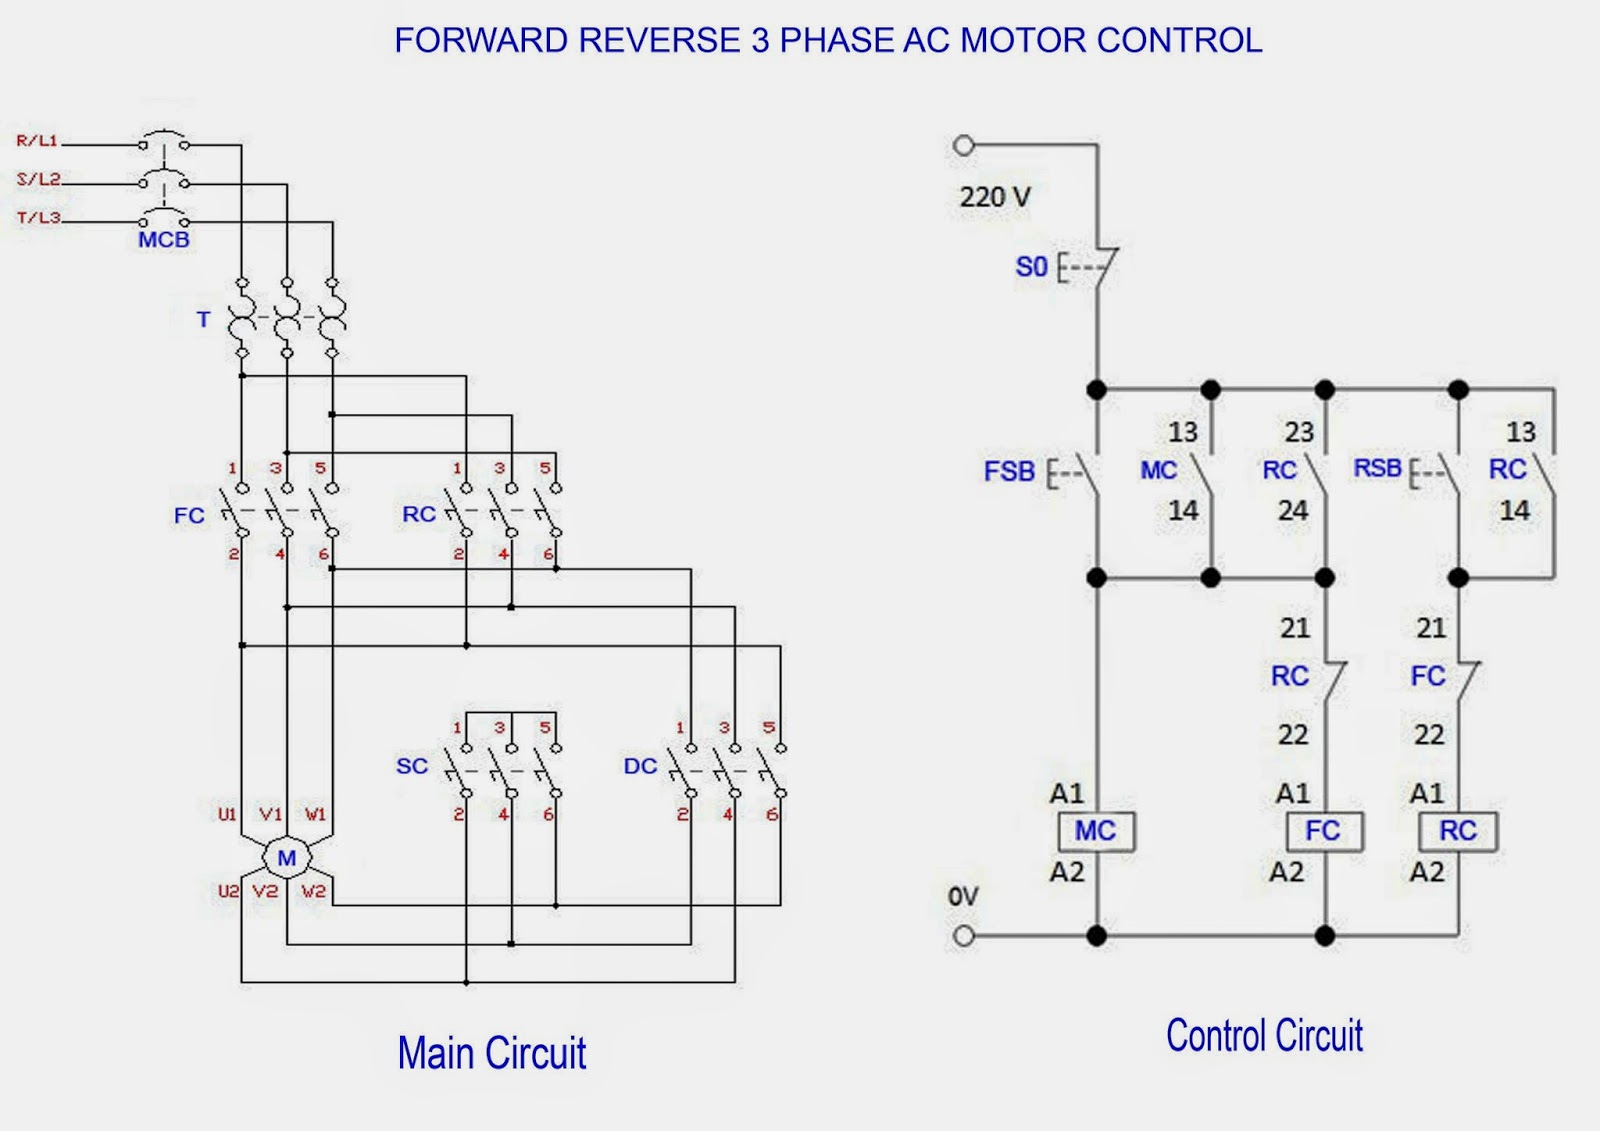 forward reverse 3 phase ac motor control wiring diagram on wiring diagram for a 3 phase motor